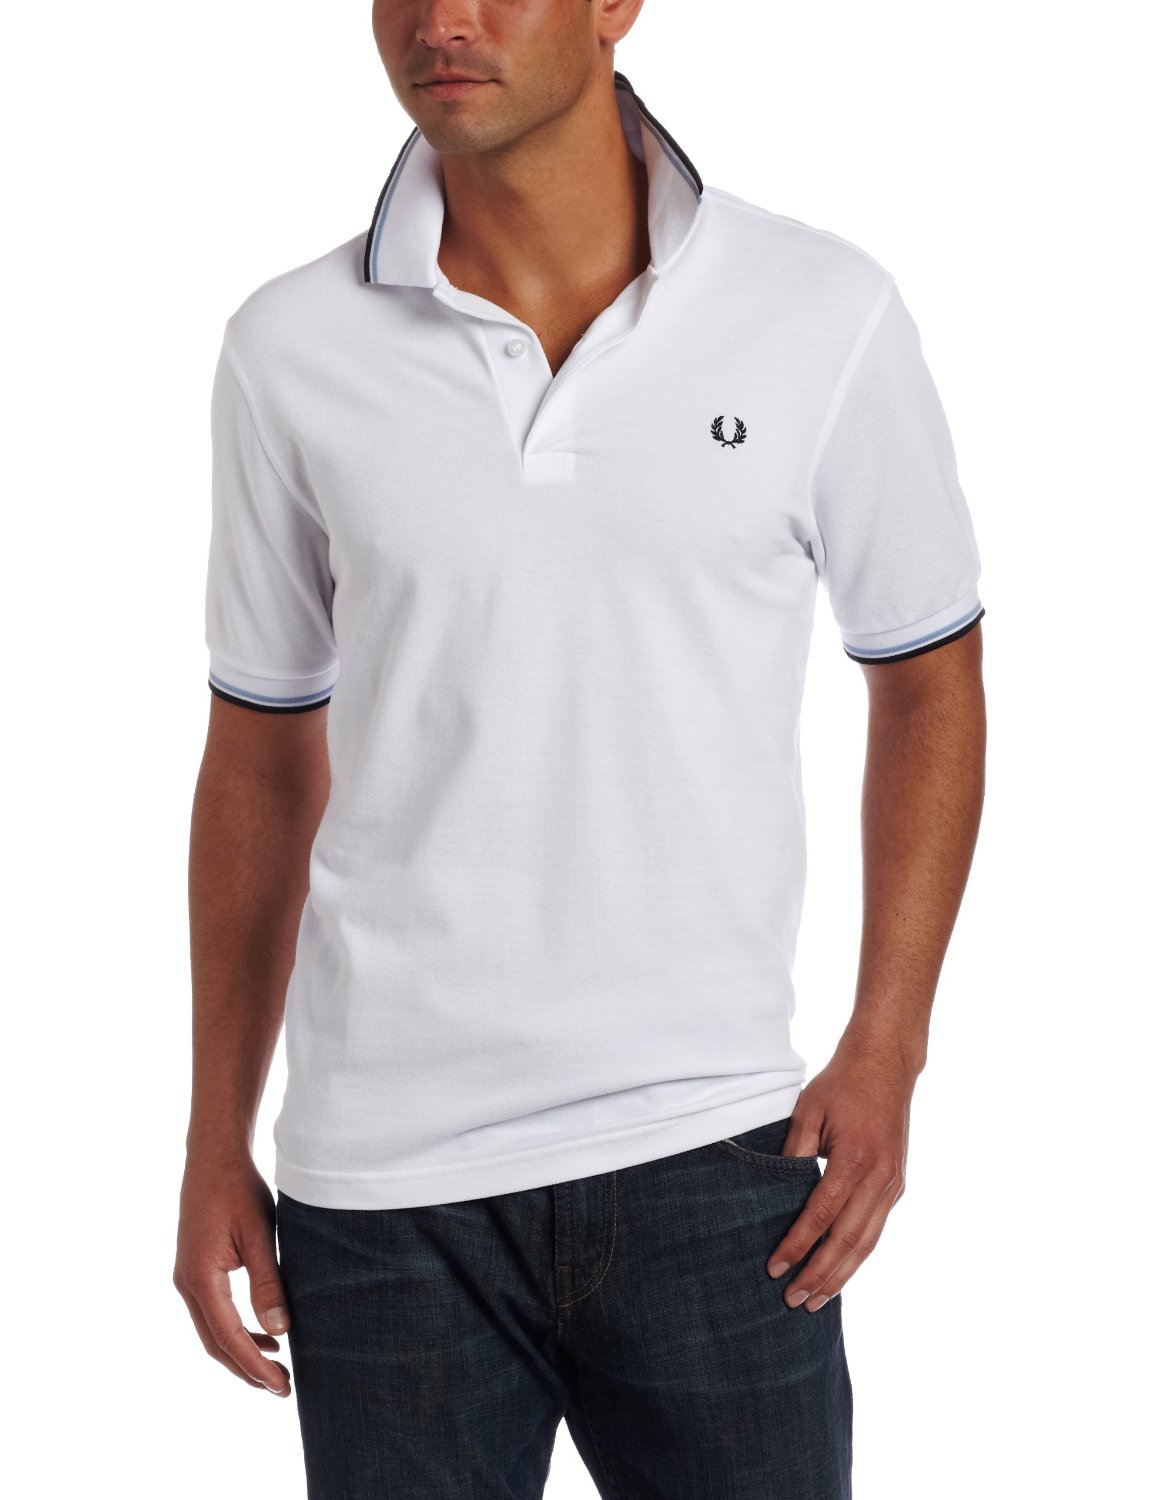 Shop for men's polo shirts & long & short sleeve knit shirts online at northtercessbudh.cf FREE shipping on orders over $